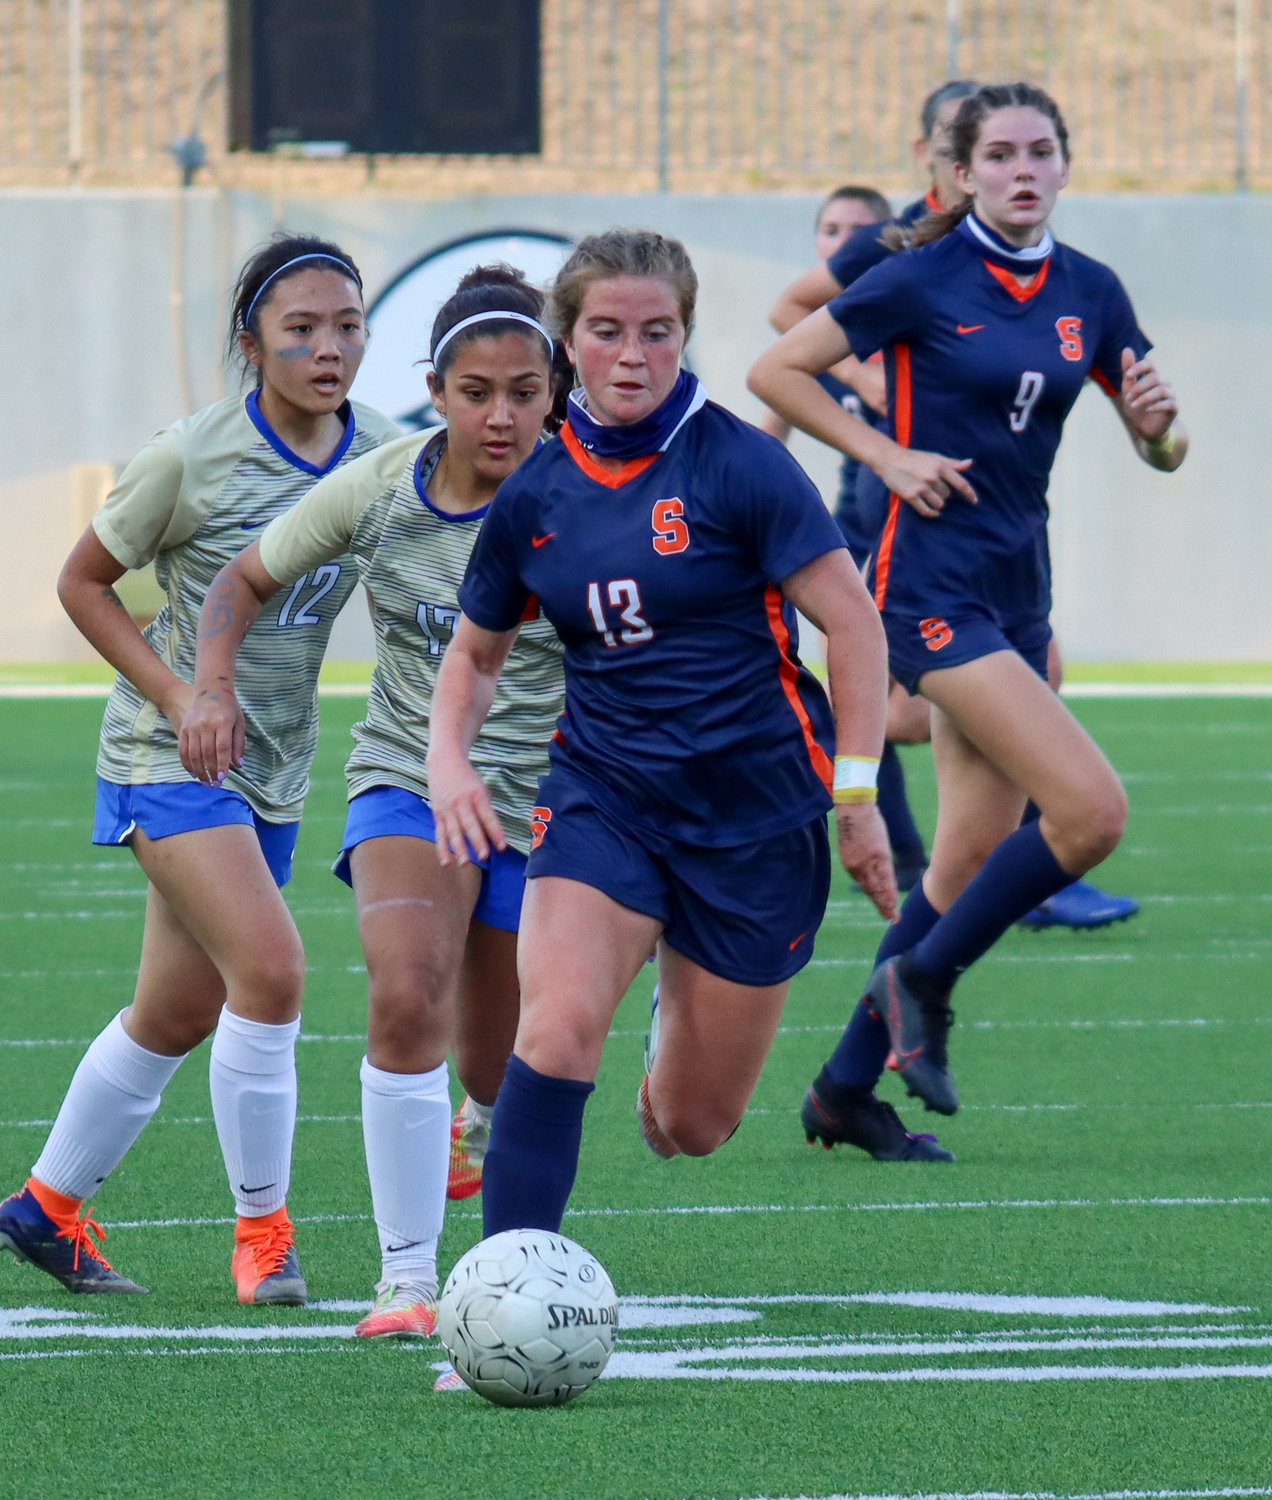 Seven Lakes senior midfielder Phoebe Harpole moves downfield ahead of Elkins defenders during the Spartans' 7-0 Class 6A bi-district playoff win on Friday, March 26, at Legacy Stadium.